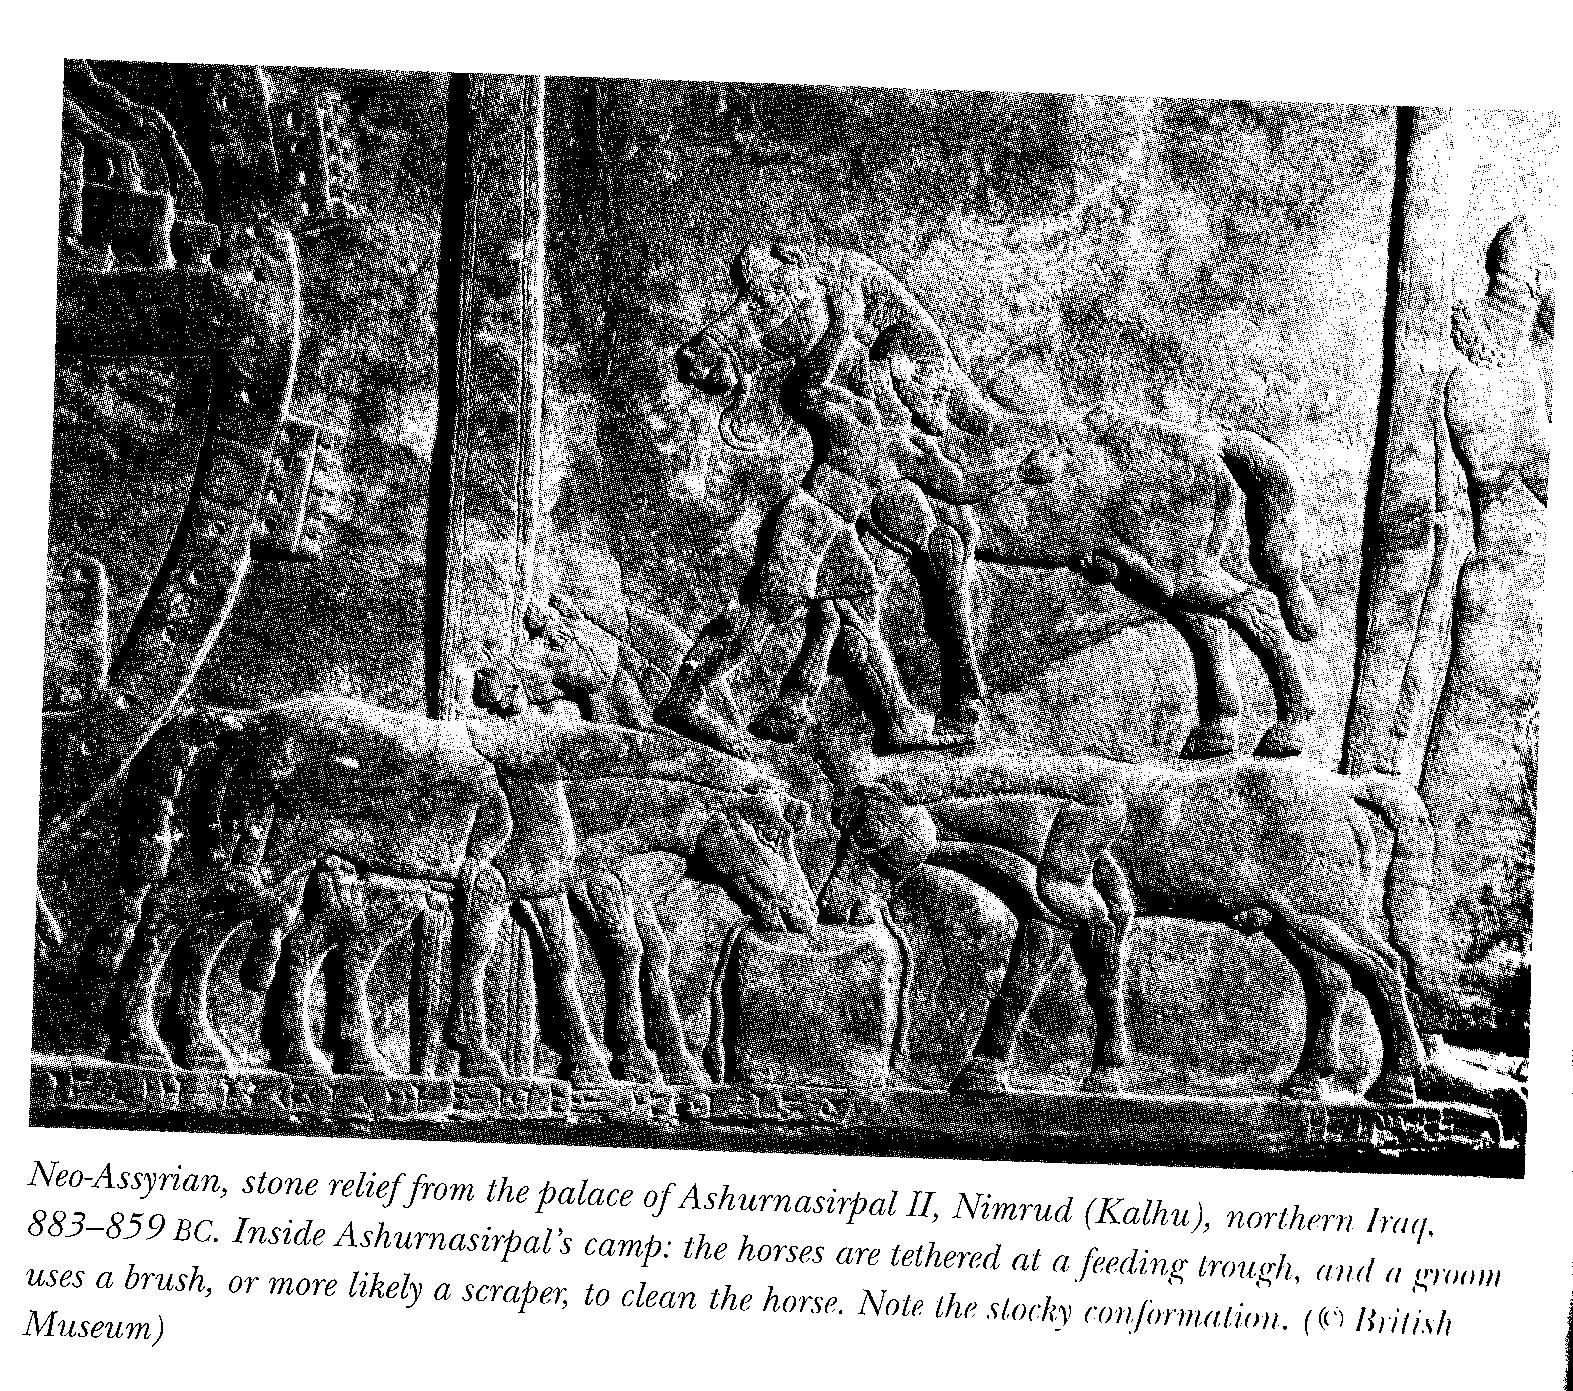 photo indus valley civilization essay images horse and chariot race horse and chariot race